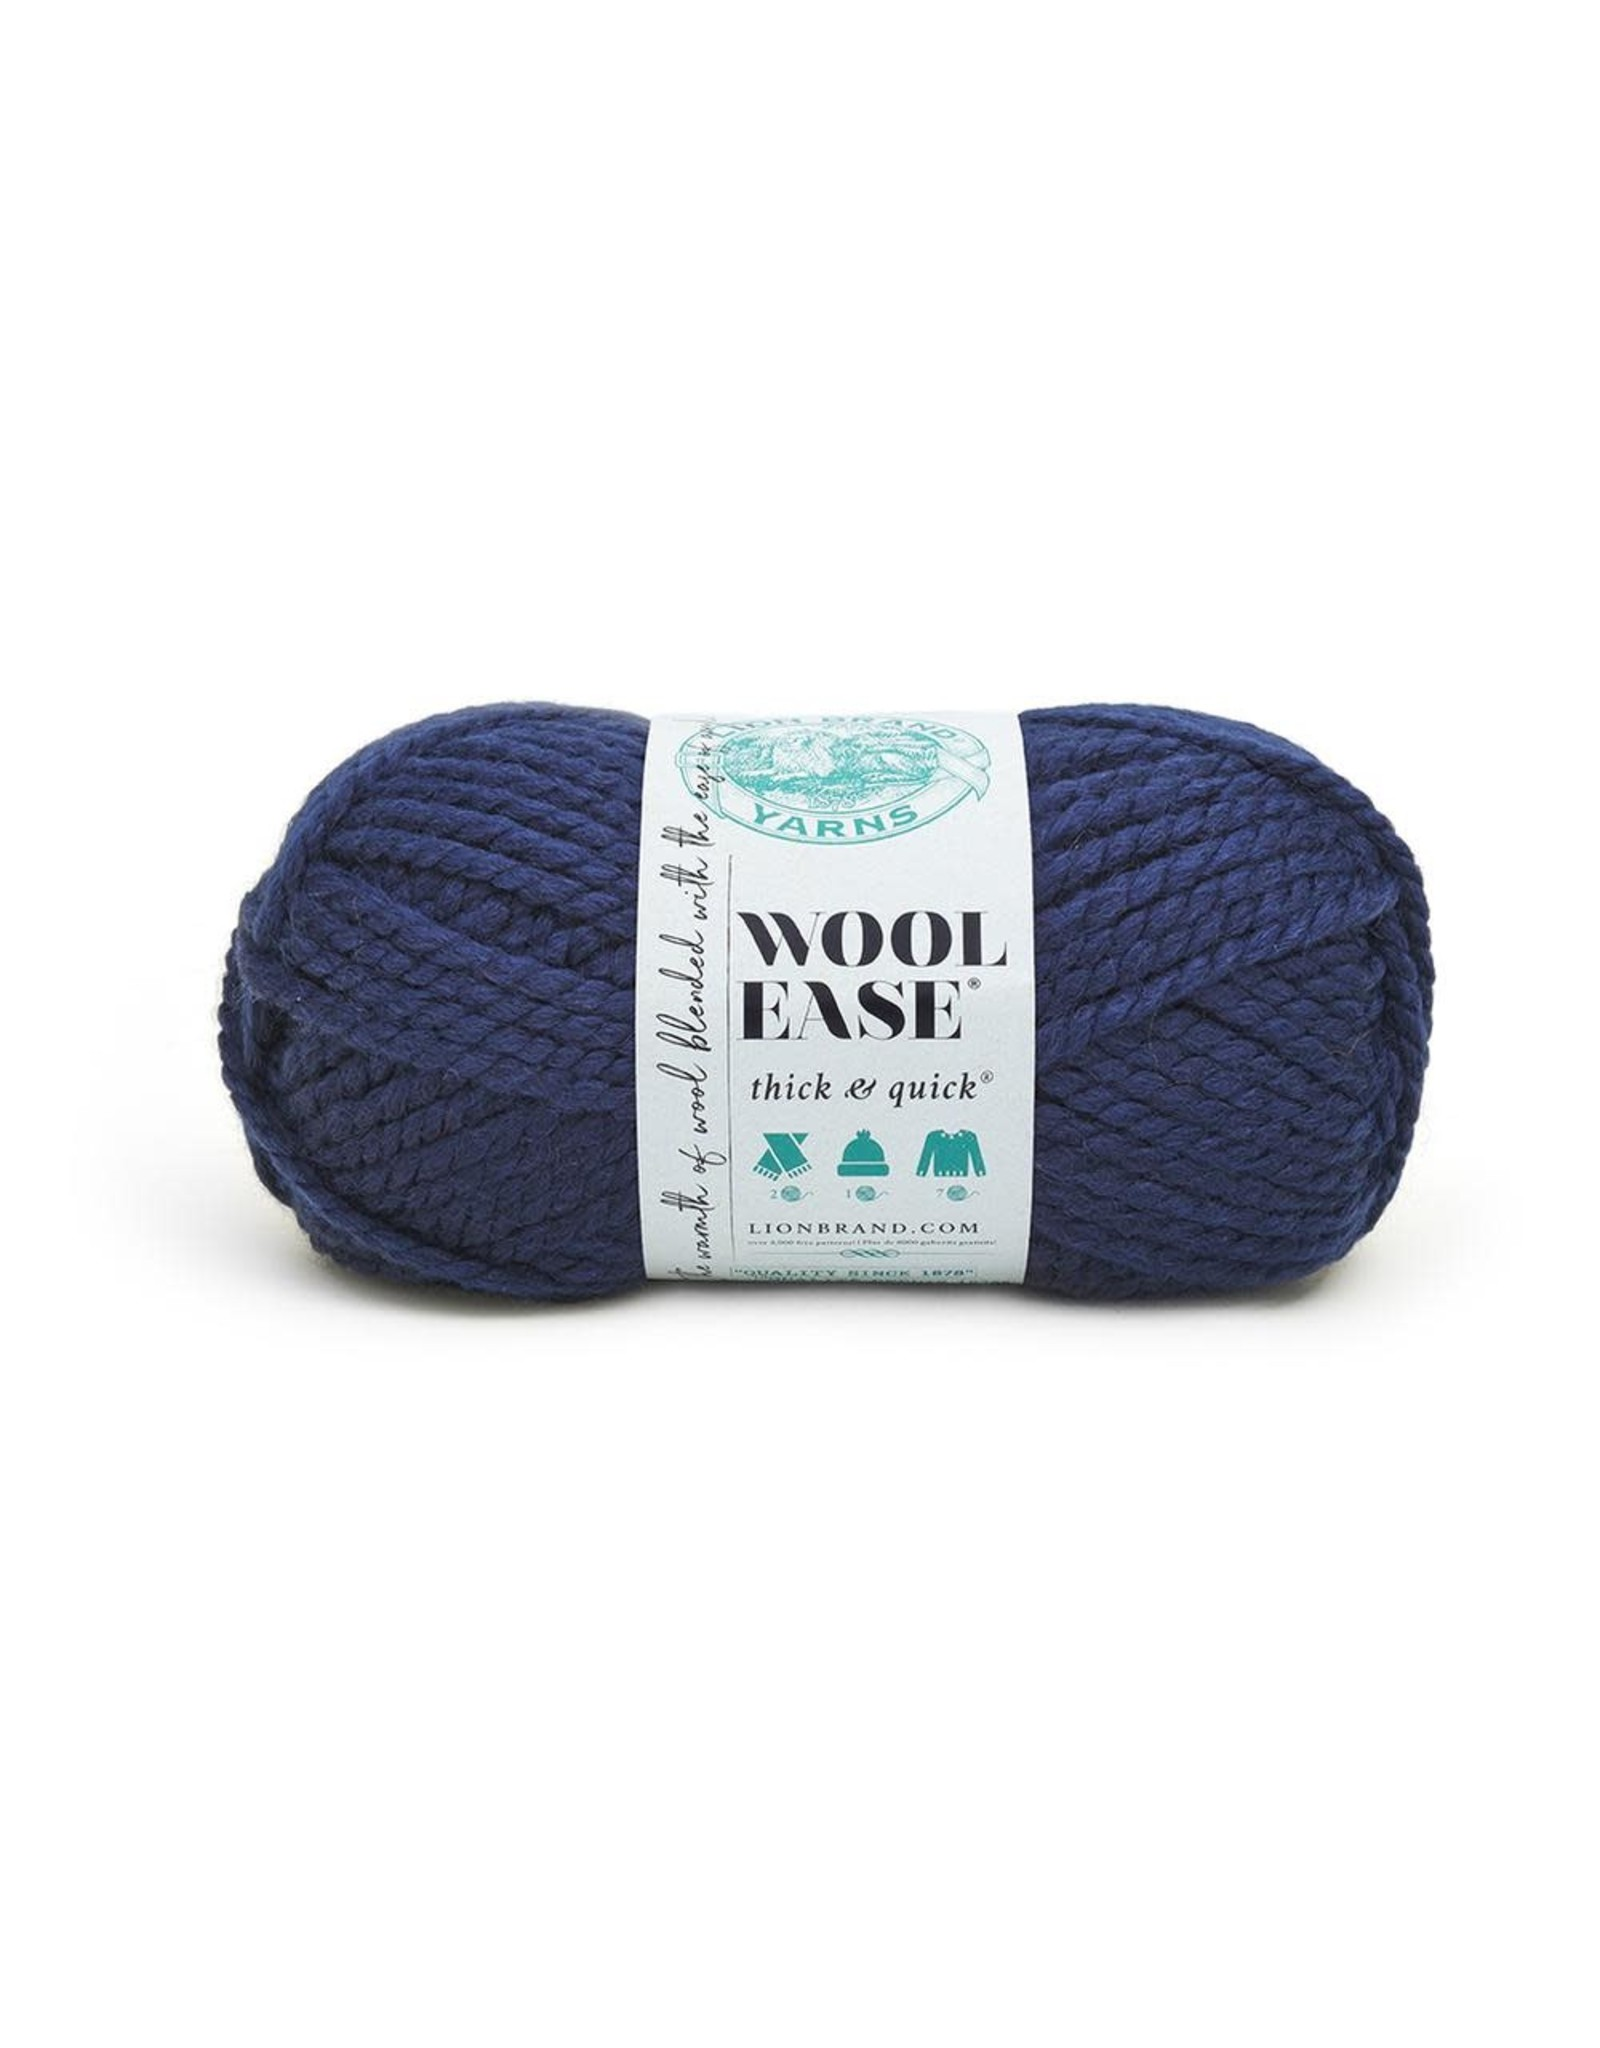 Navy - Wool Ease Thick and Quick - Lion Brand